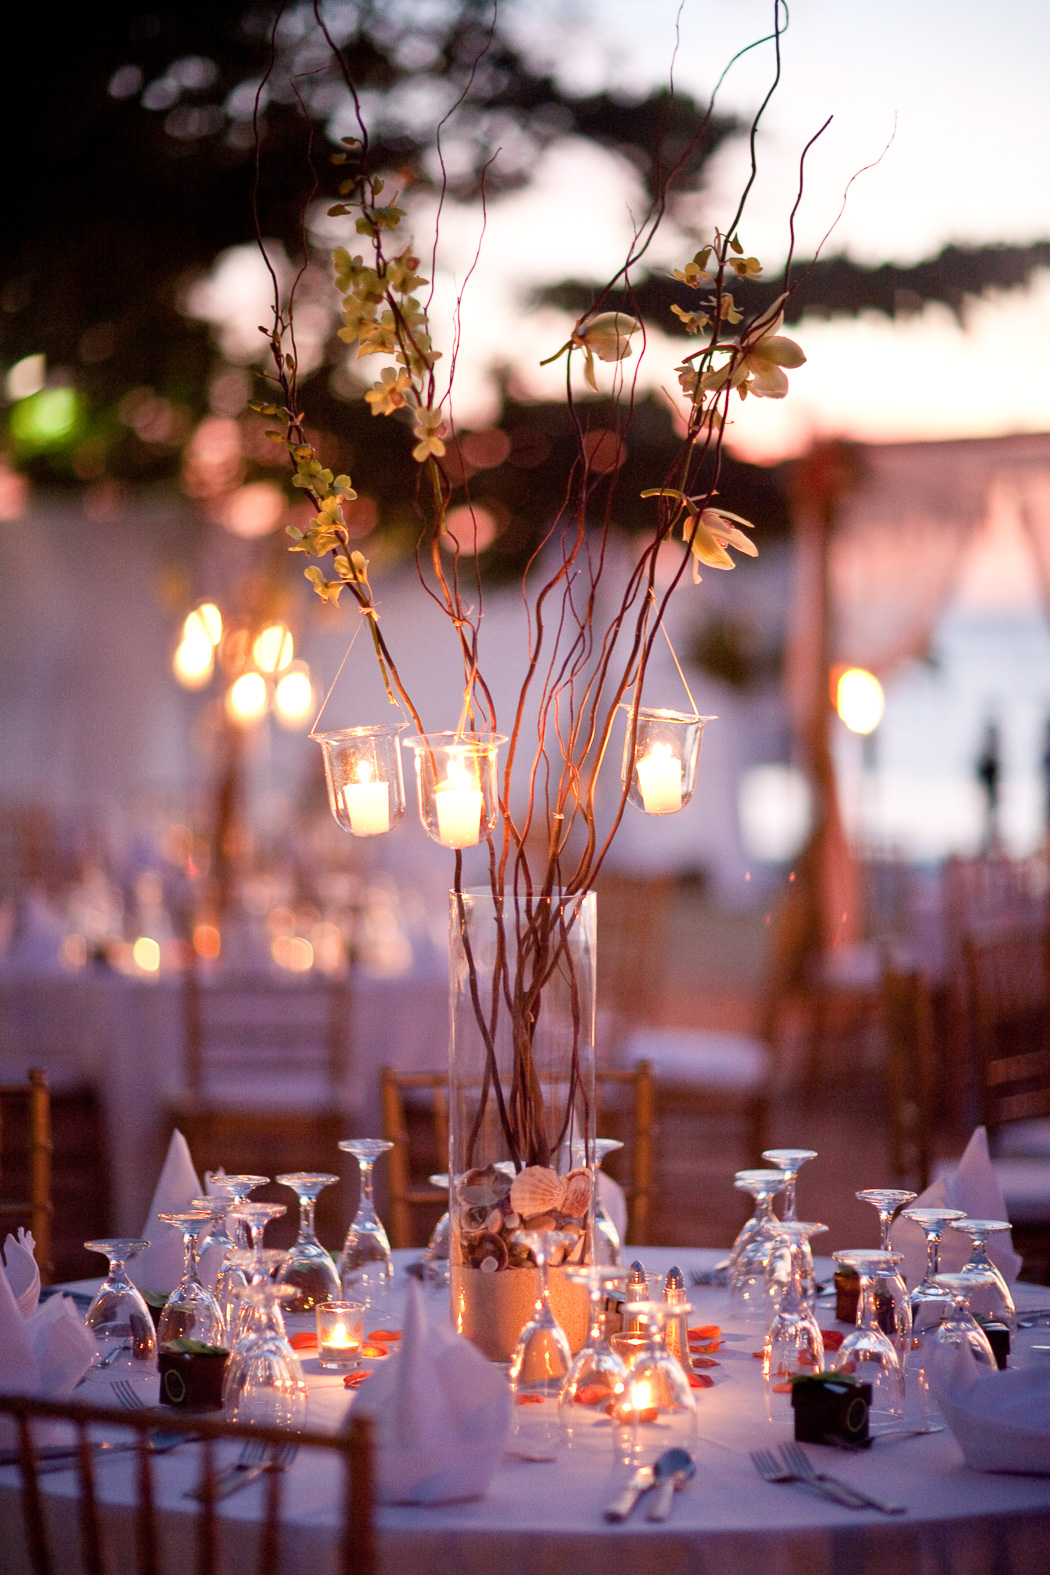 IdleAwhile-Villas-Weddings-Detail-57228f8482248.jpg